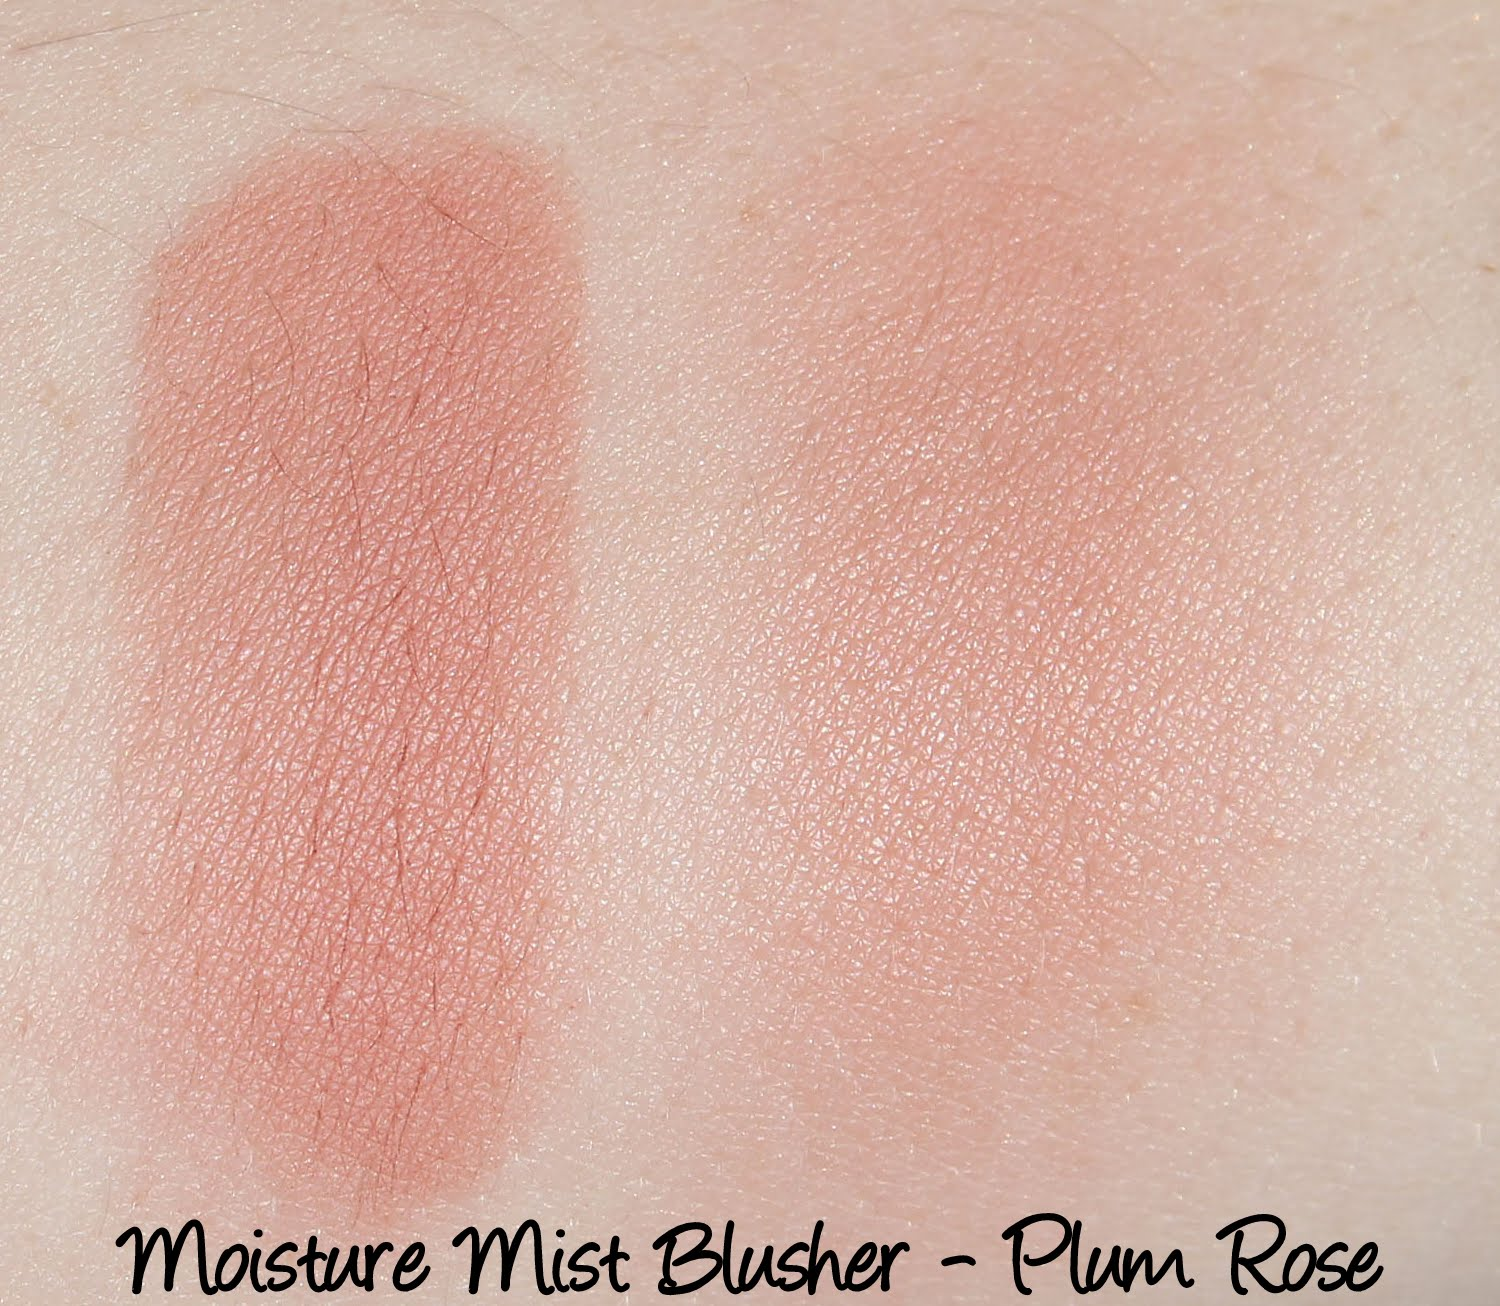 Moisture Mist Blusher B03 Plum Rose Swatches & Review